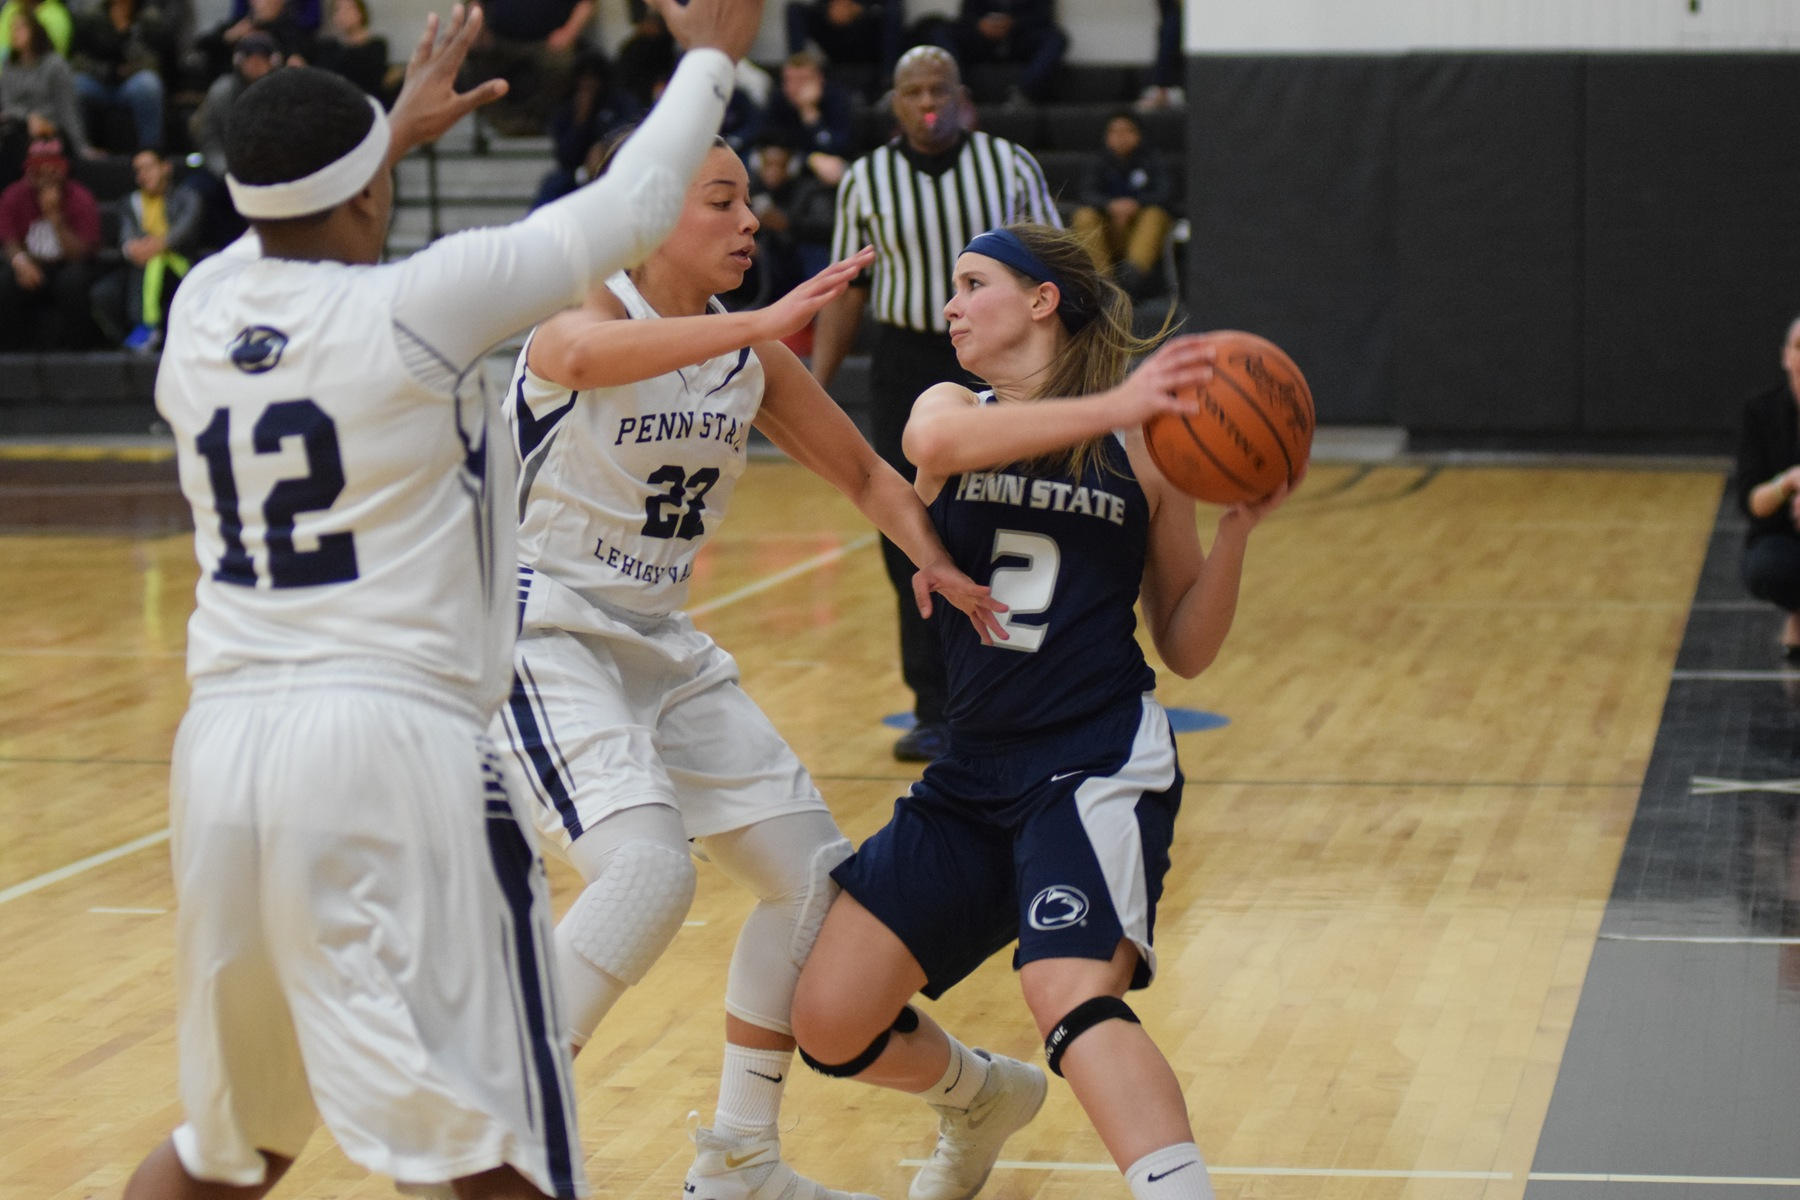 Brandywine ends Schuylkill's season in PSUAC semifinal.